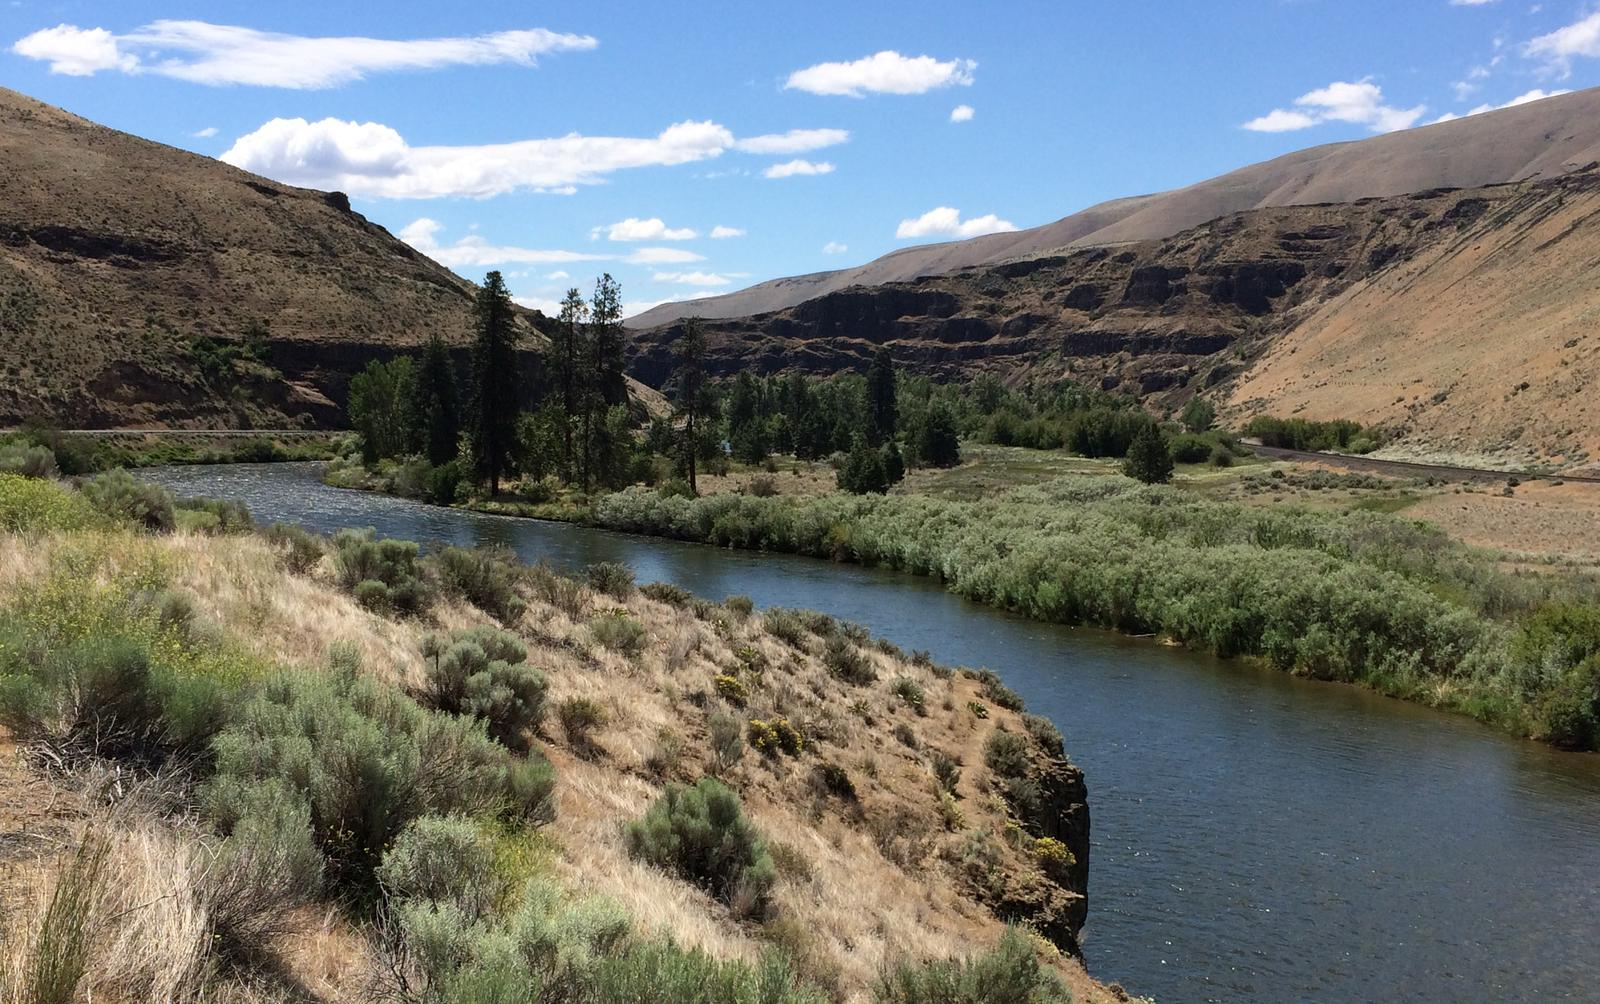 Stunning scenery of the Yakima River Canyon in central Washington.The Yakima River flows through the stunning Yakima River Canyon in central Washington.